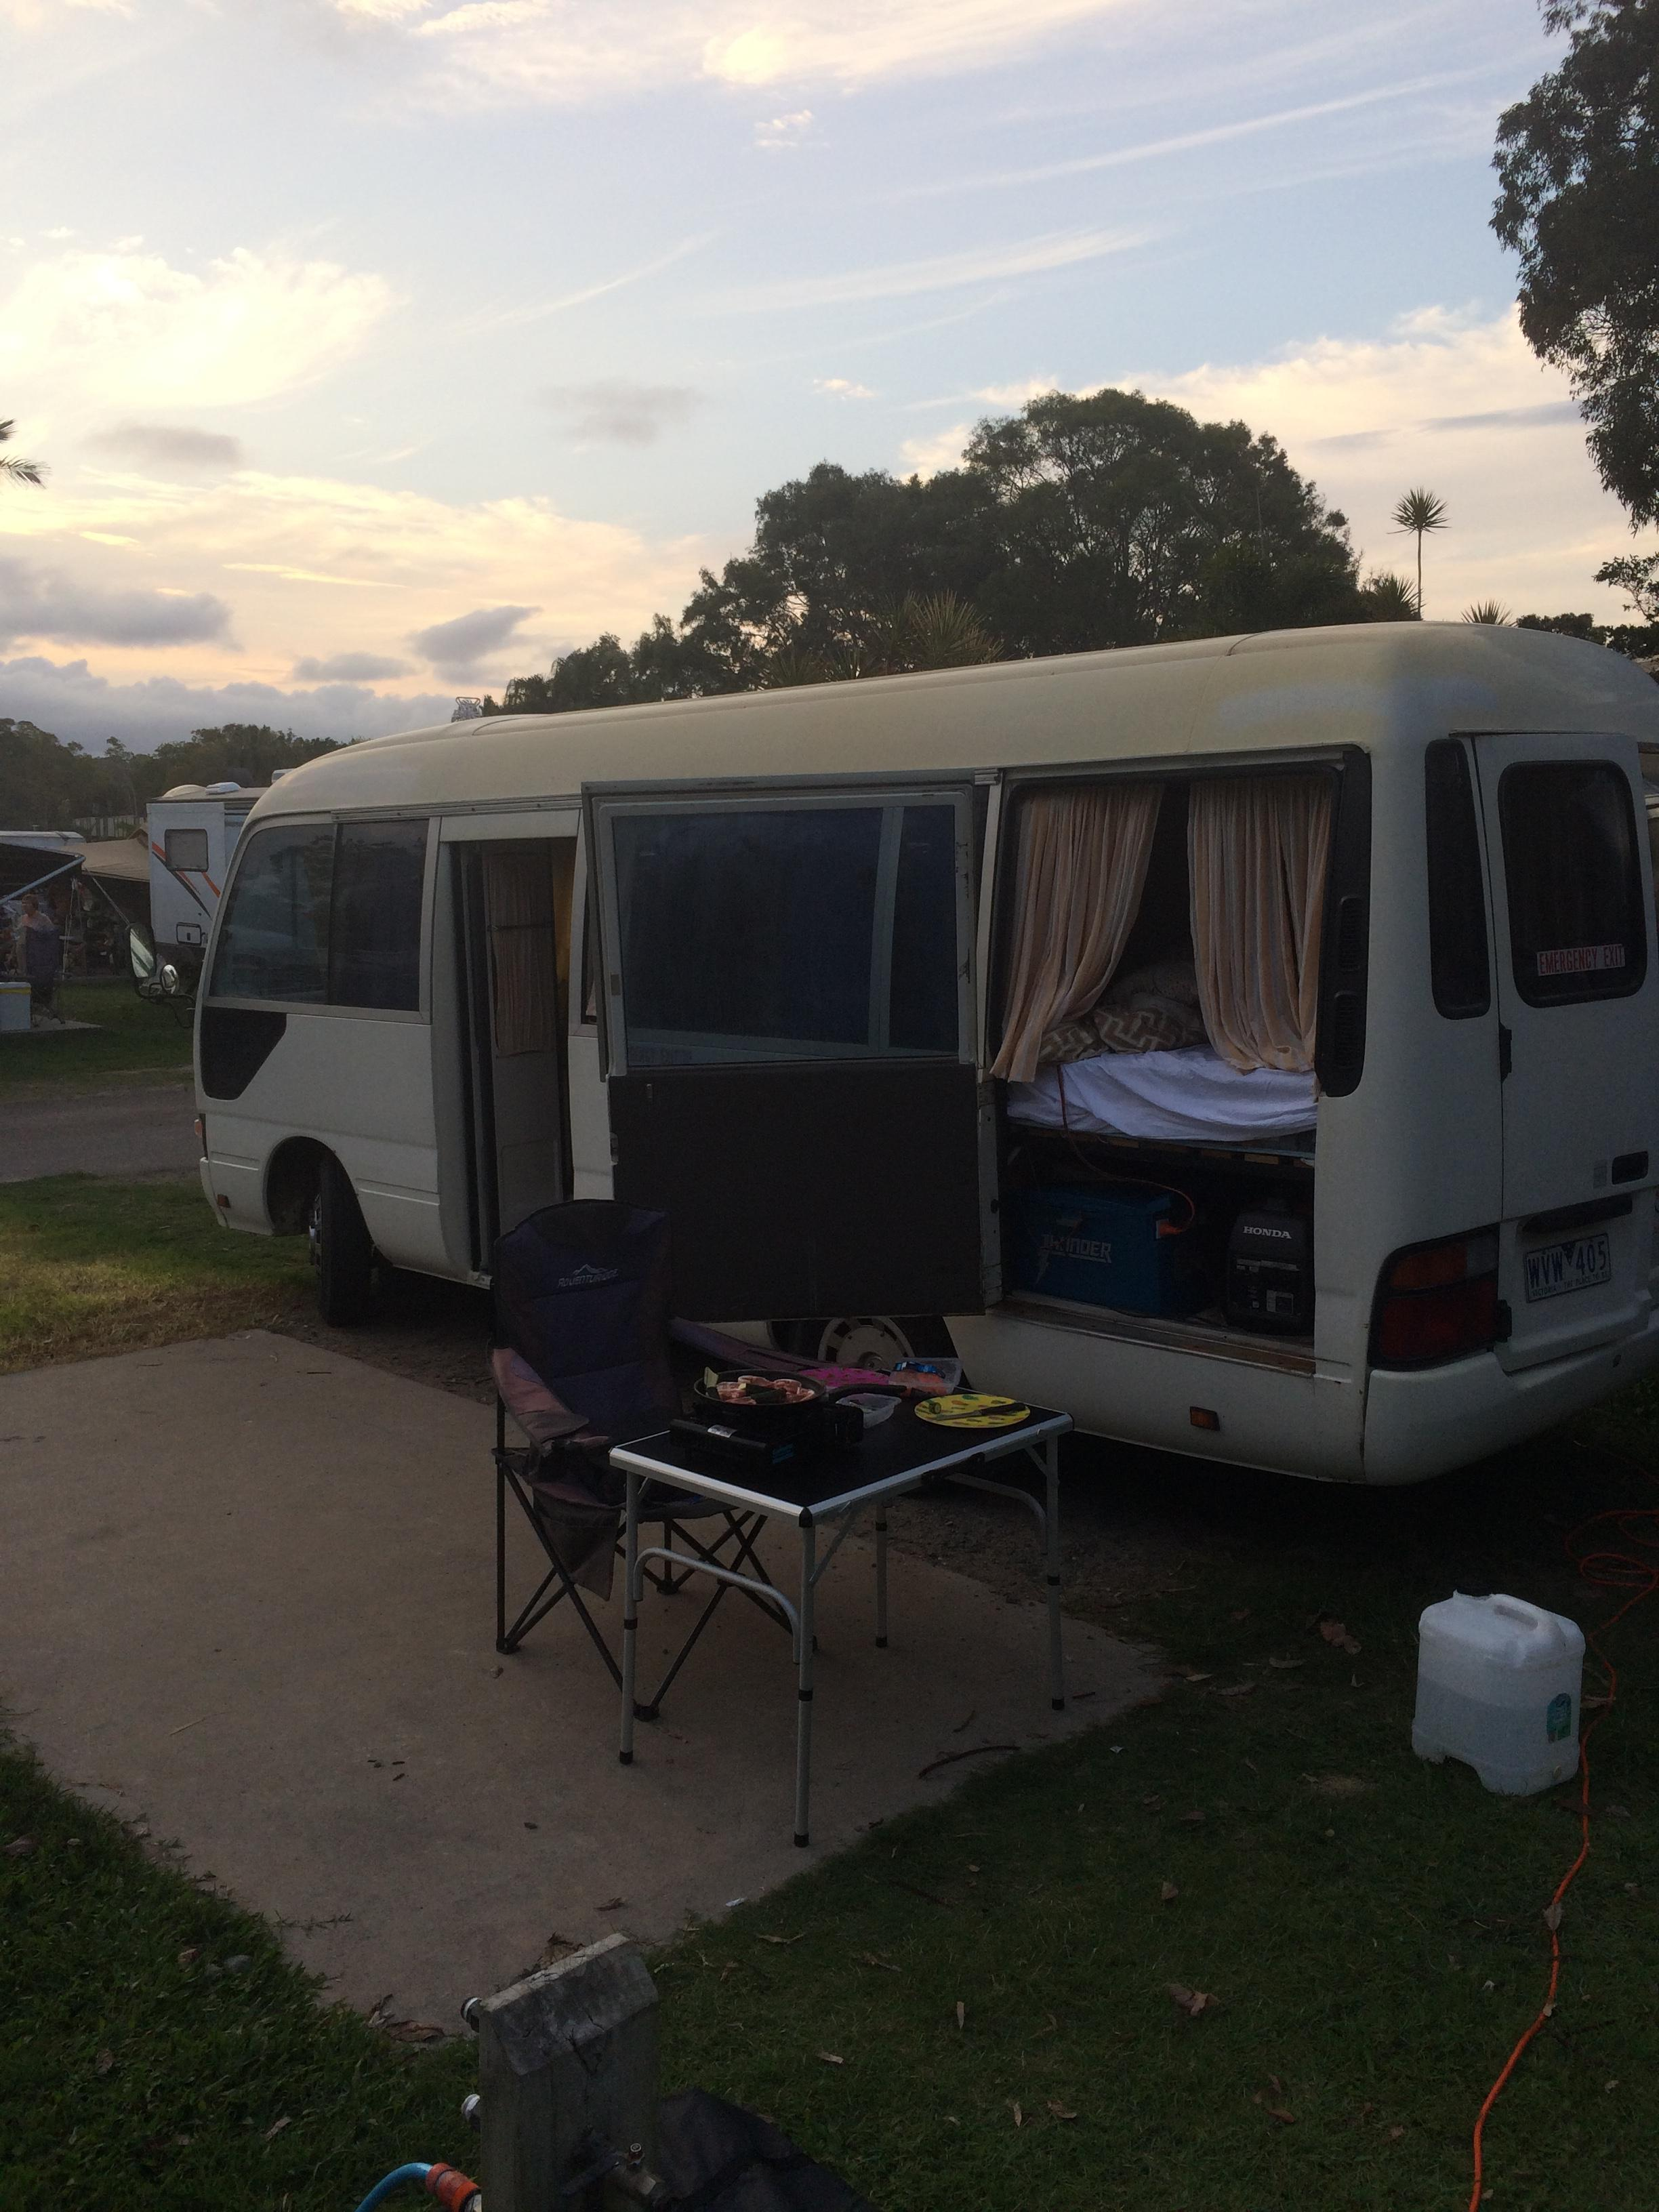 1999 Toyota Coaster Camper Full kitchen,